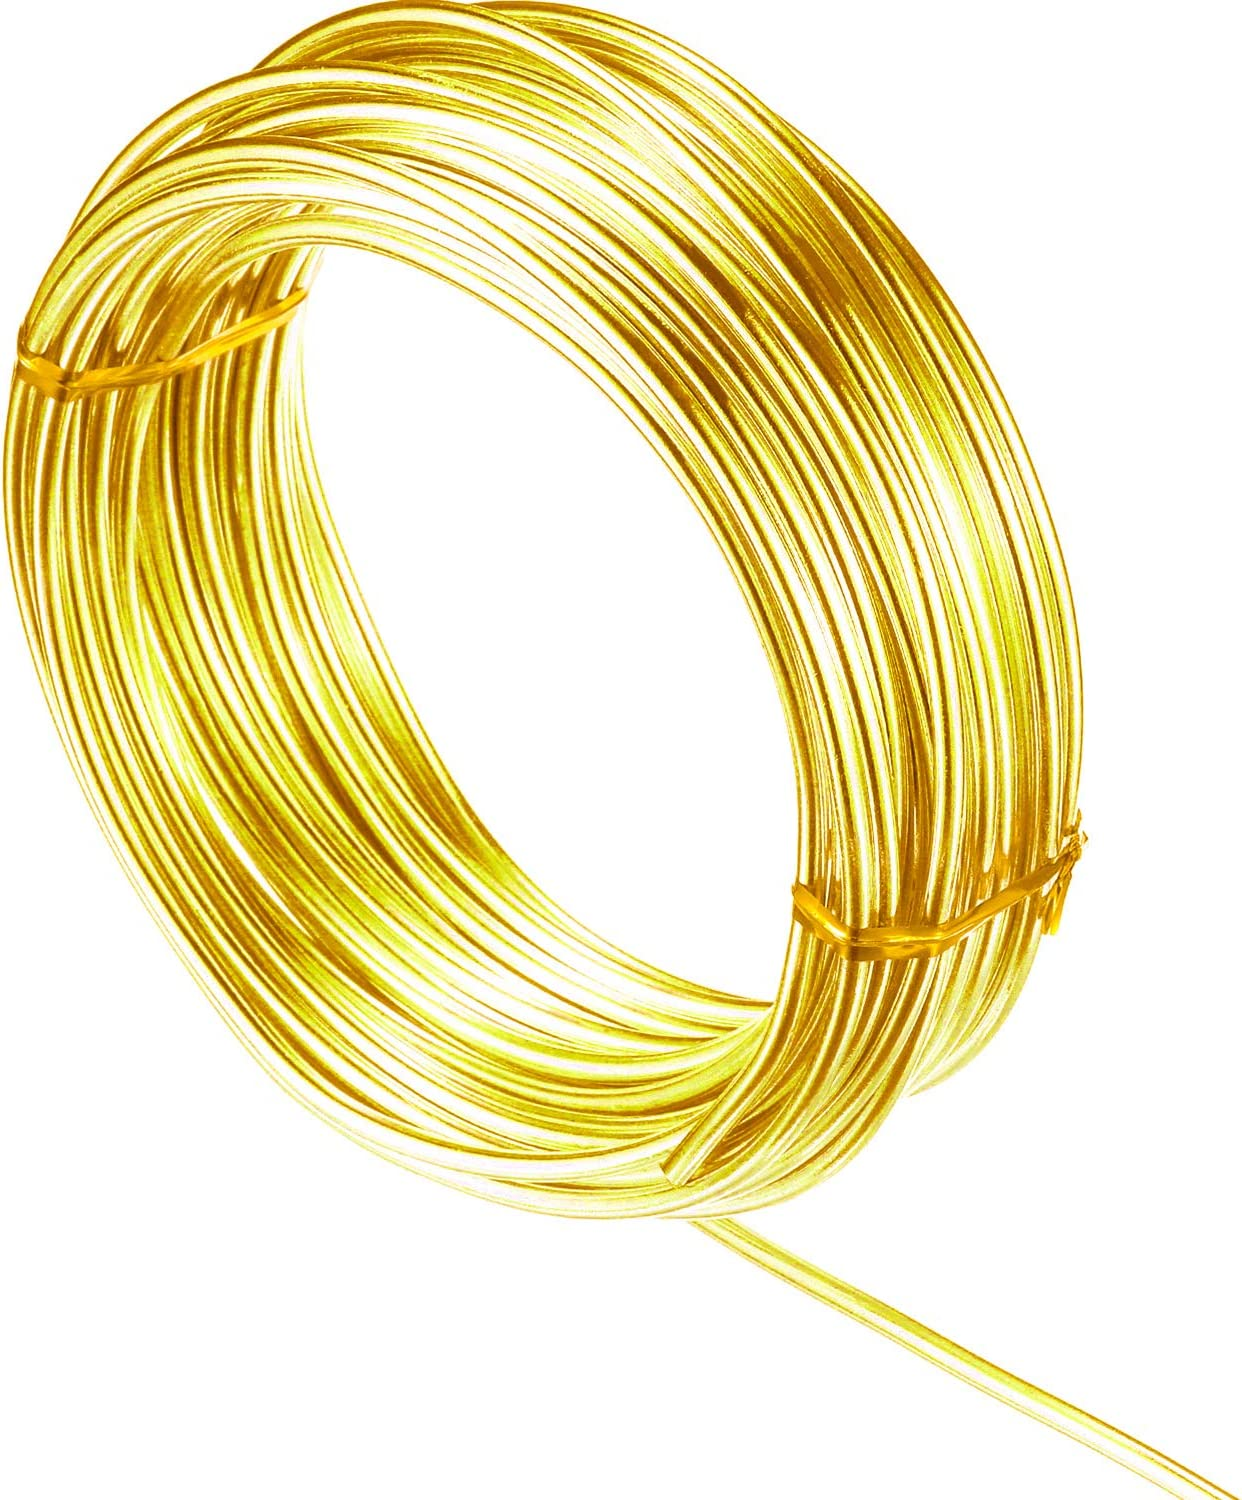 32.8 Feet 10M 3mm Aluminum Wire Aluminum Craft Wire Aluminum Craft Wire Artistic Floral Colored Jewely Beading Wire Bendable Metal Craft Wire Aluminum Flat Wire Dolls Skeleton DIY Crafts Wire Yellow